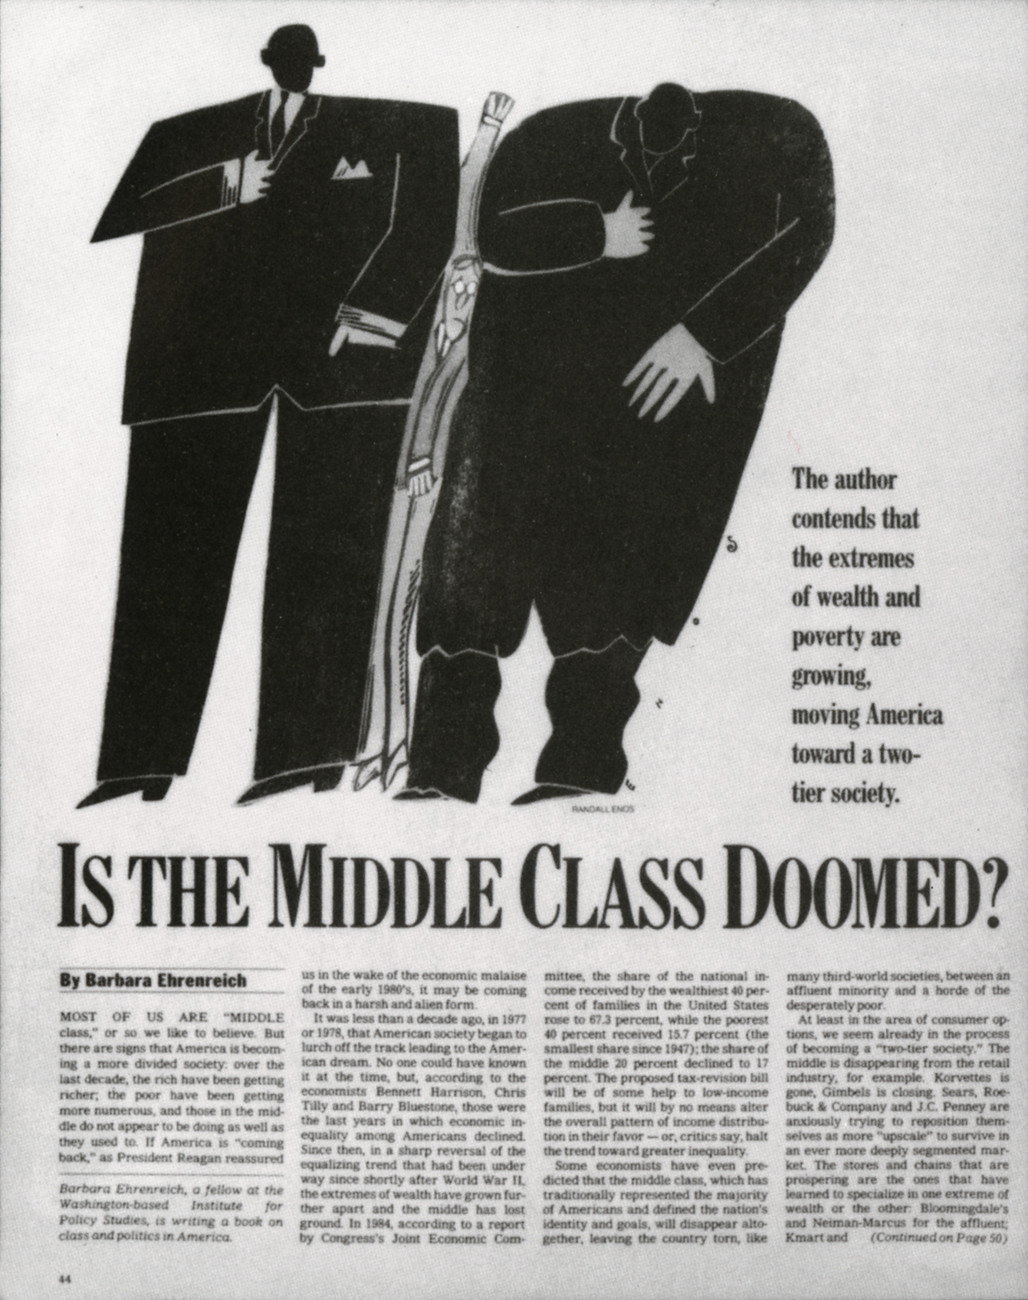 Is the Middle Class Doomed? Diane LaGuardia, 1986